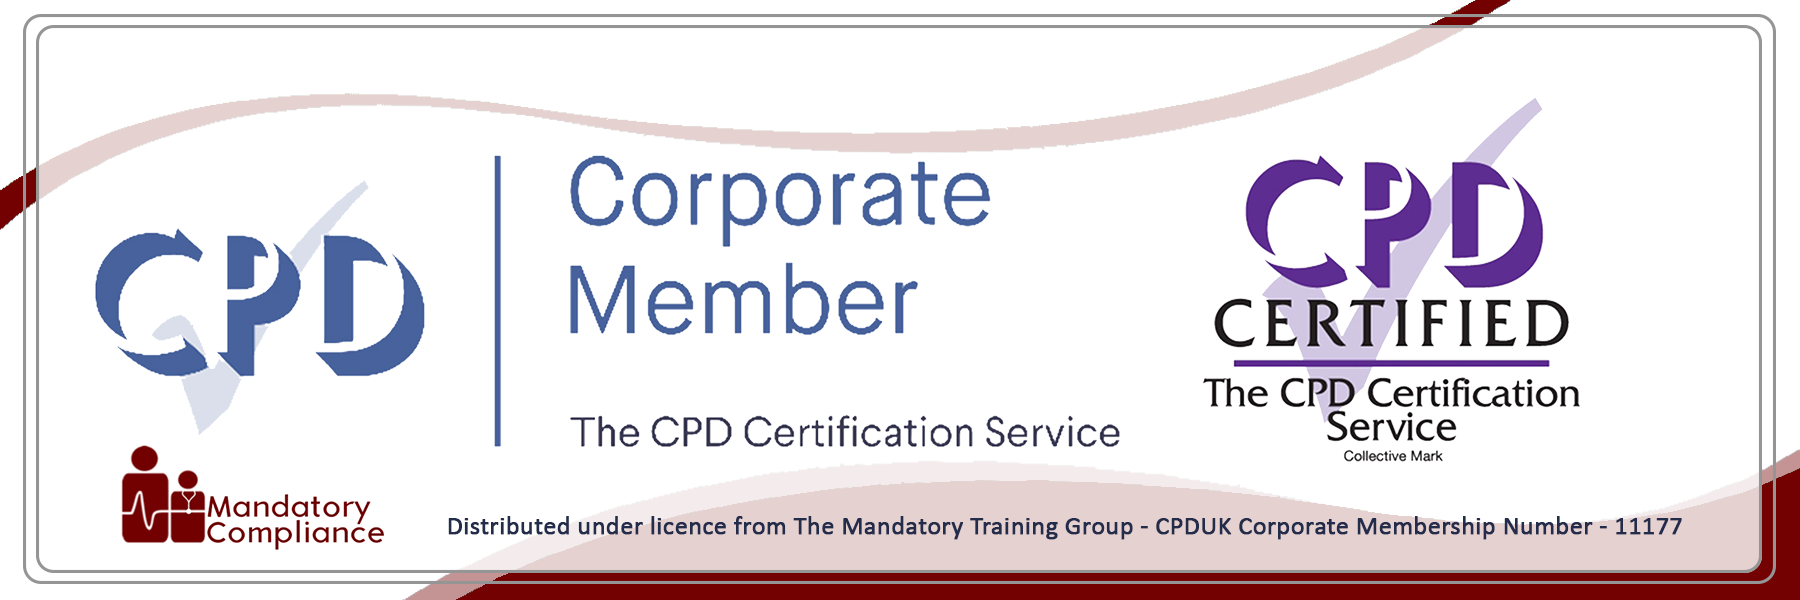 Documentation and Record Keeping - Online Training Course - CPD Accredited - Mandatory Compliance UK -